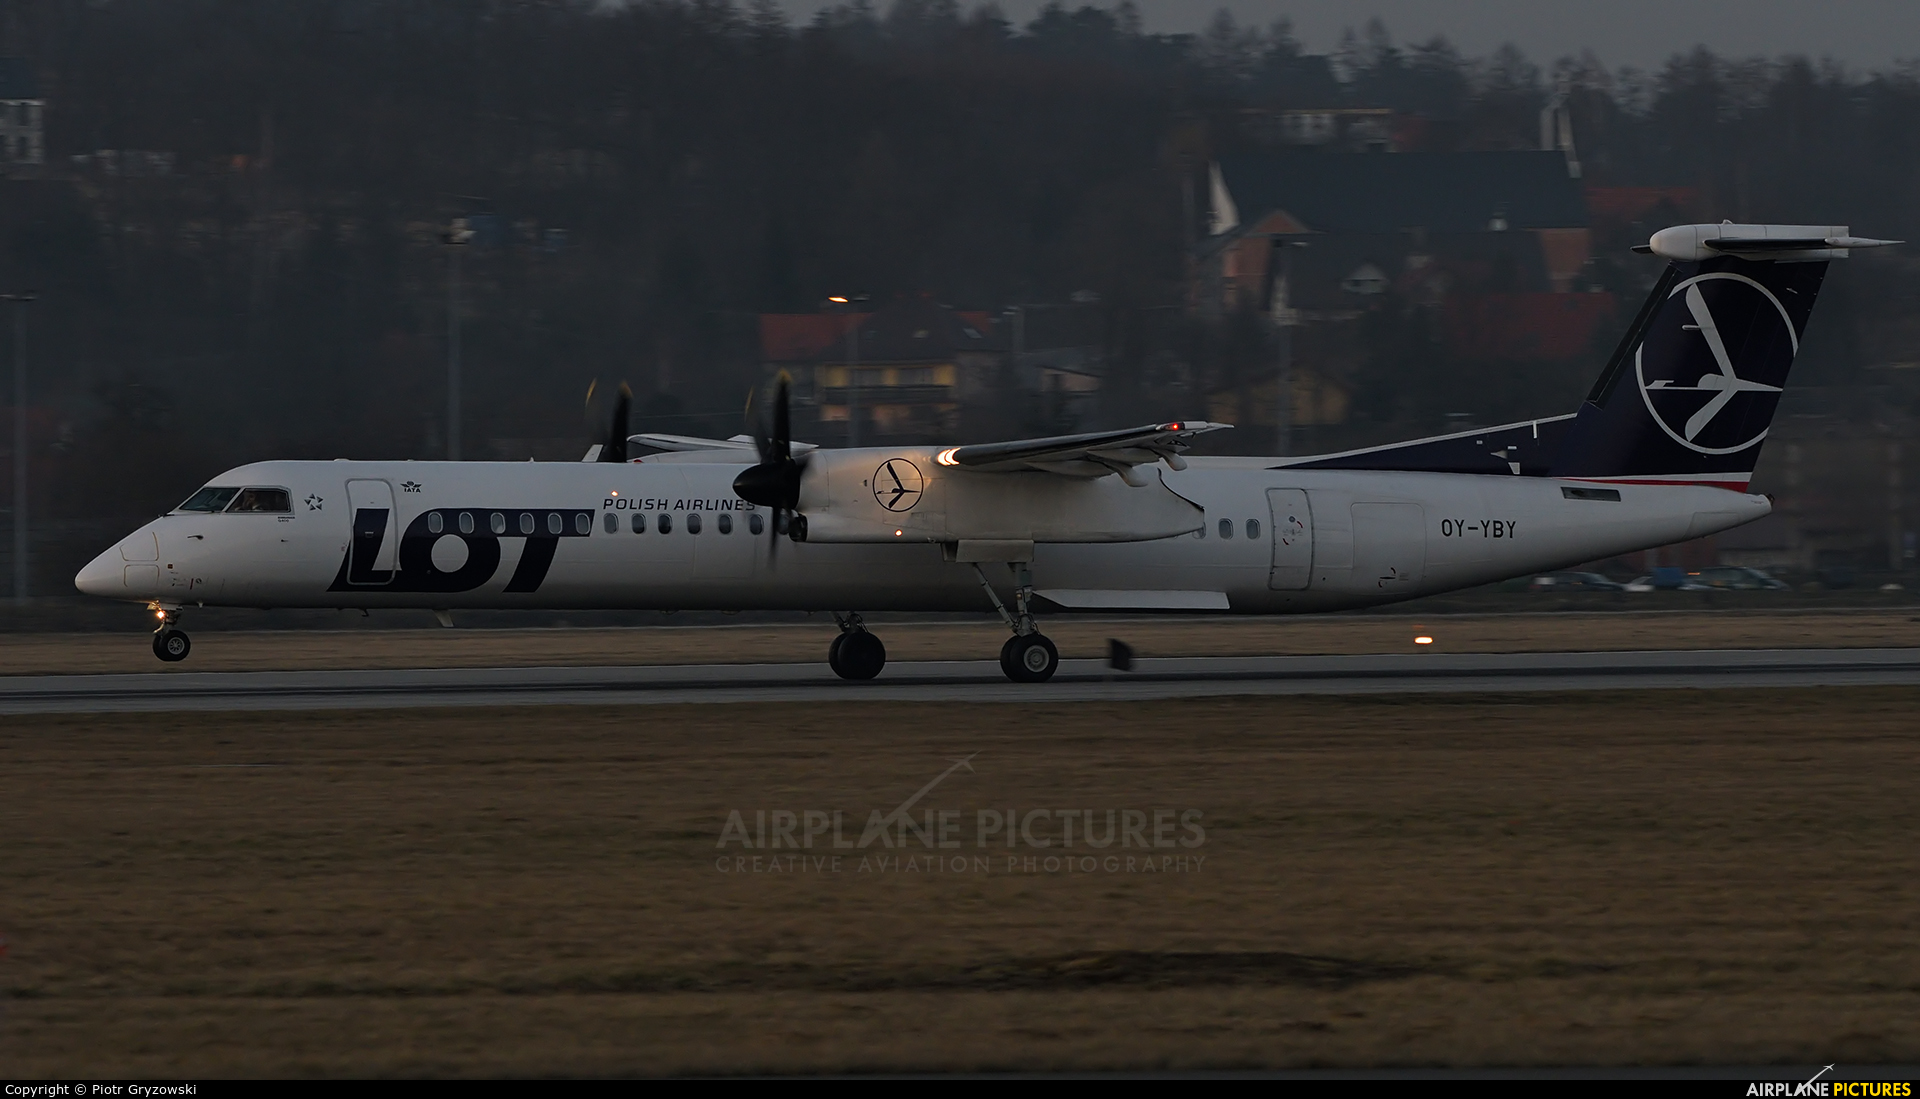 LOT - Polish Airlines OY-YBY aircraft at Kraków - John Paul II Intl